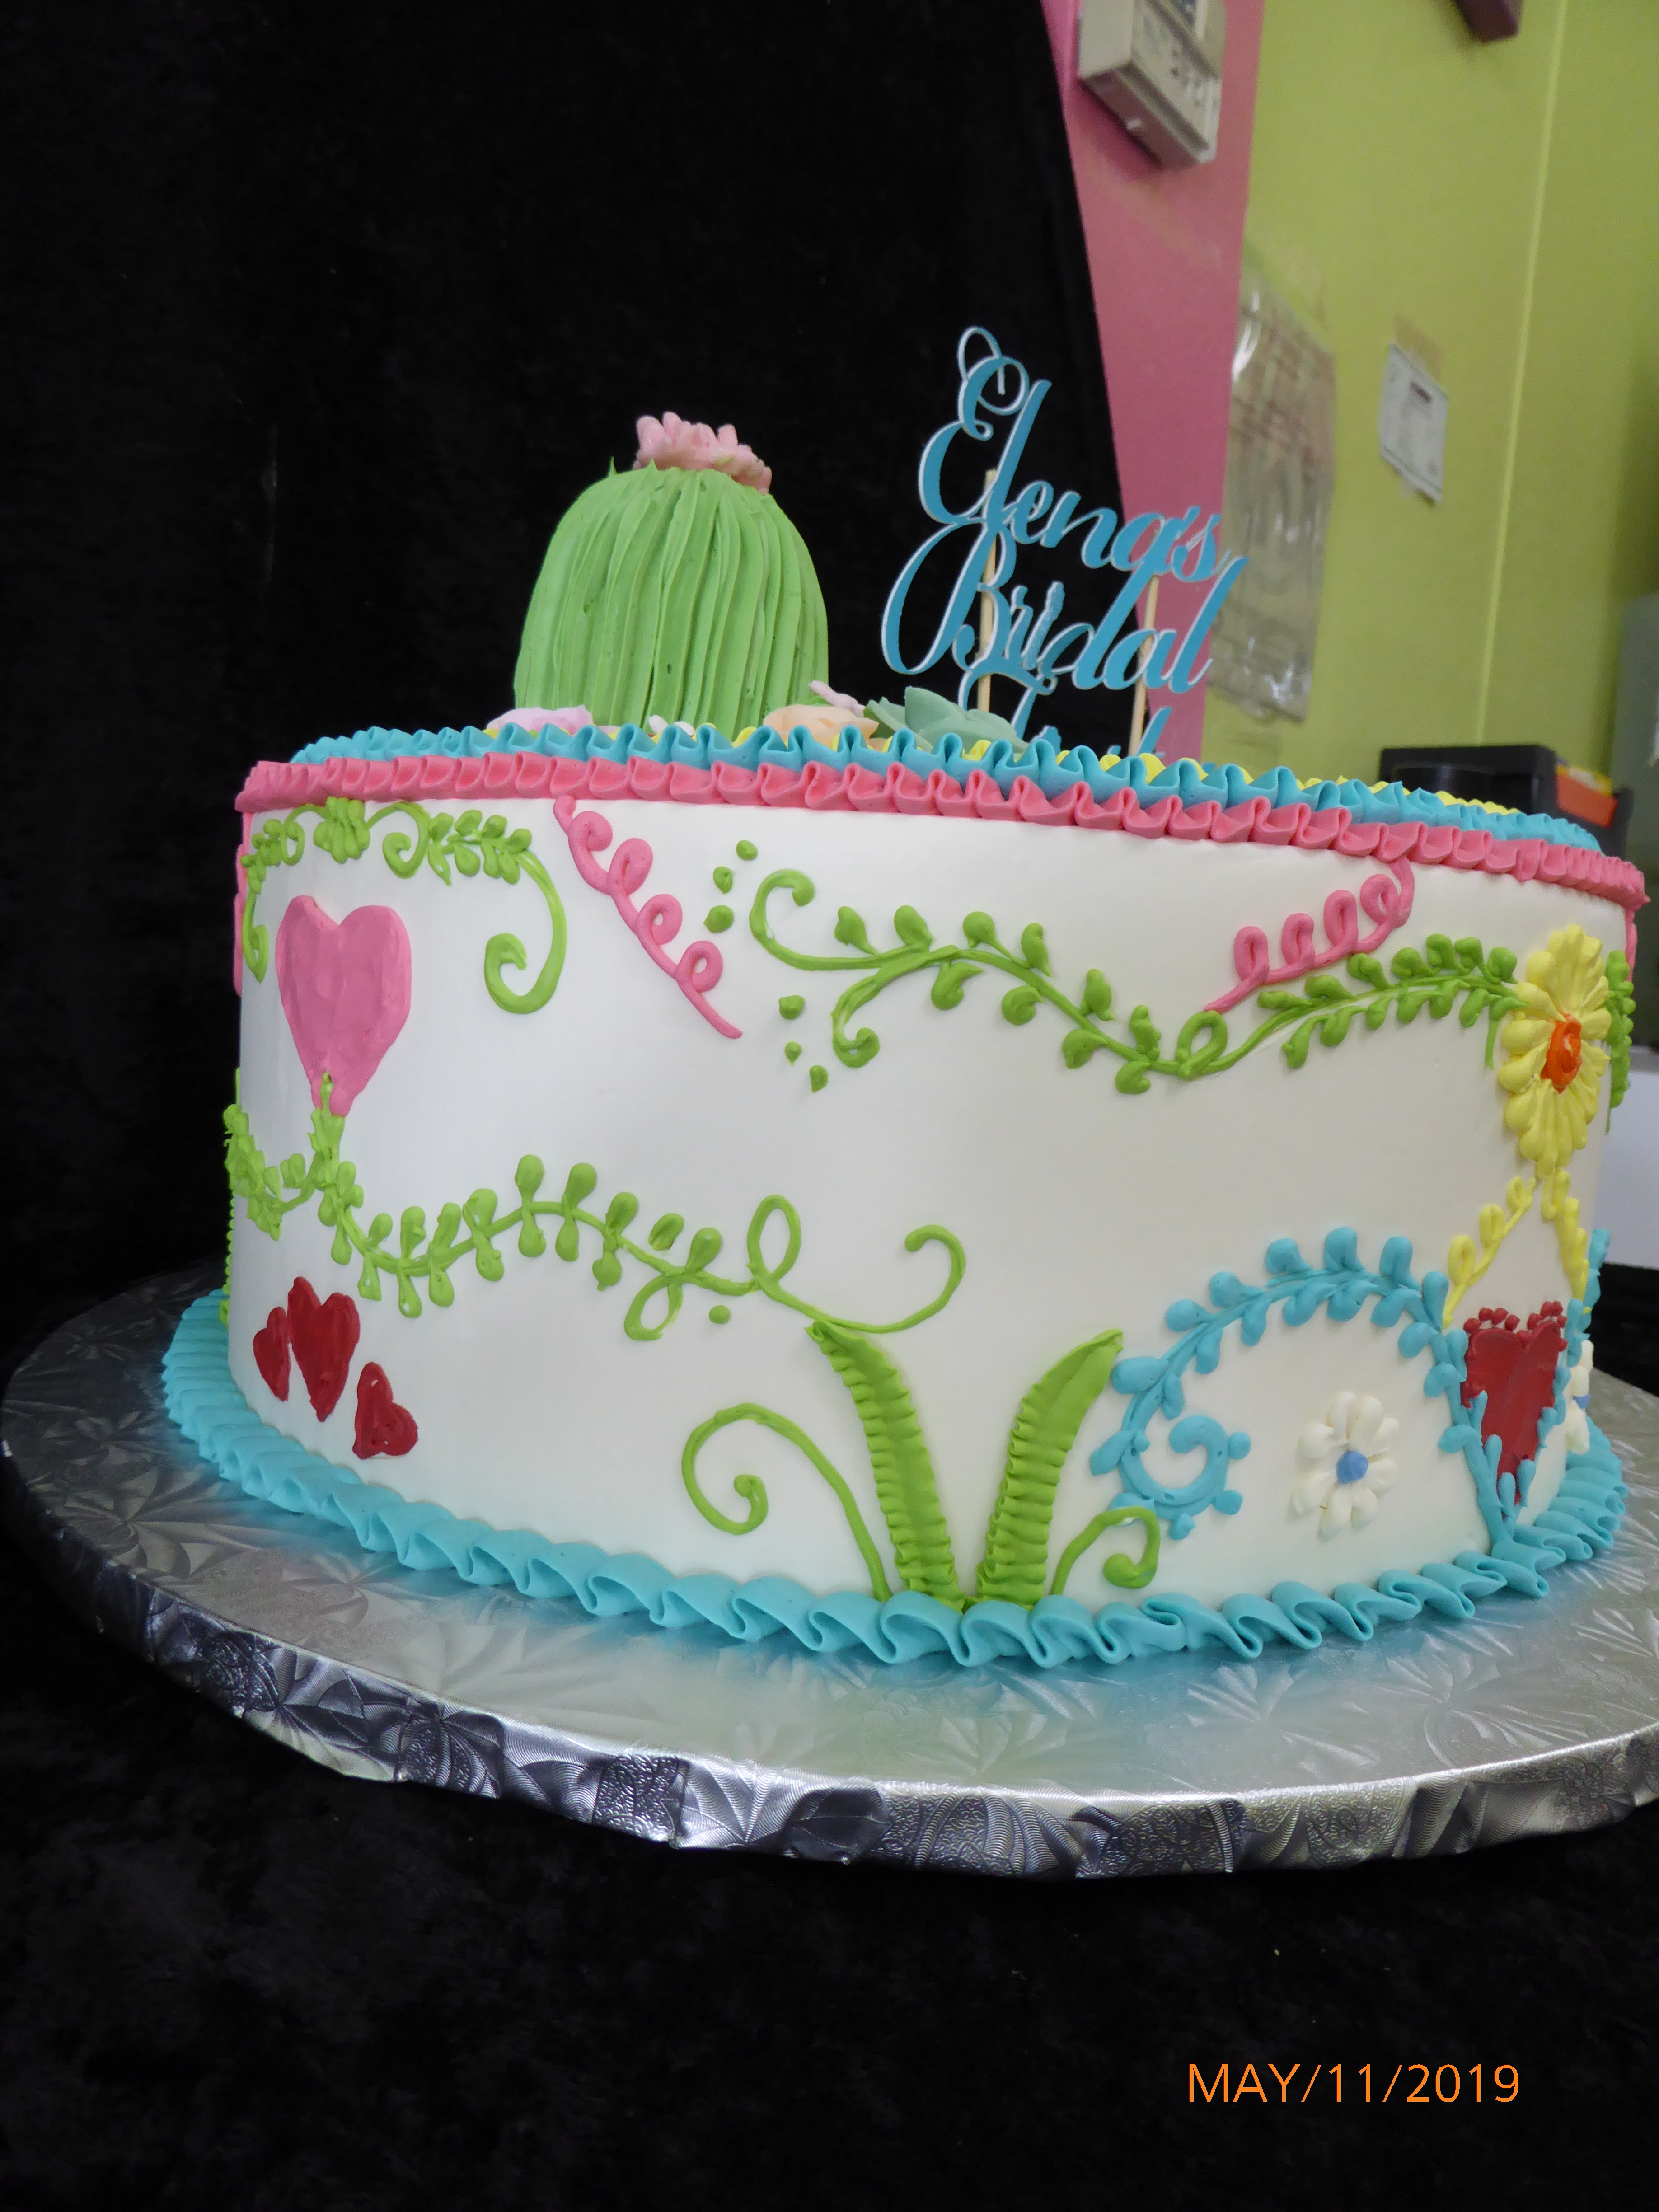 3360, bridal shower, embroidery, fiesta, yucatan, pink, green, blue, yellow, cactus, flower, flowers, heart, hearts